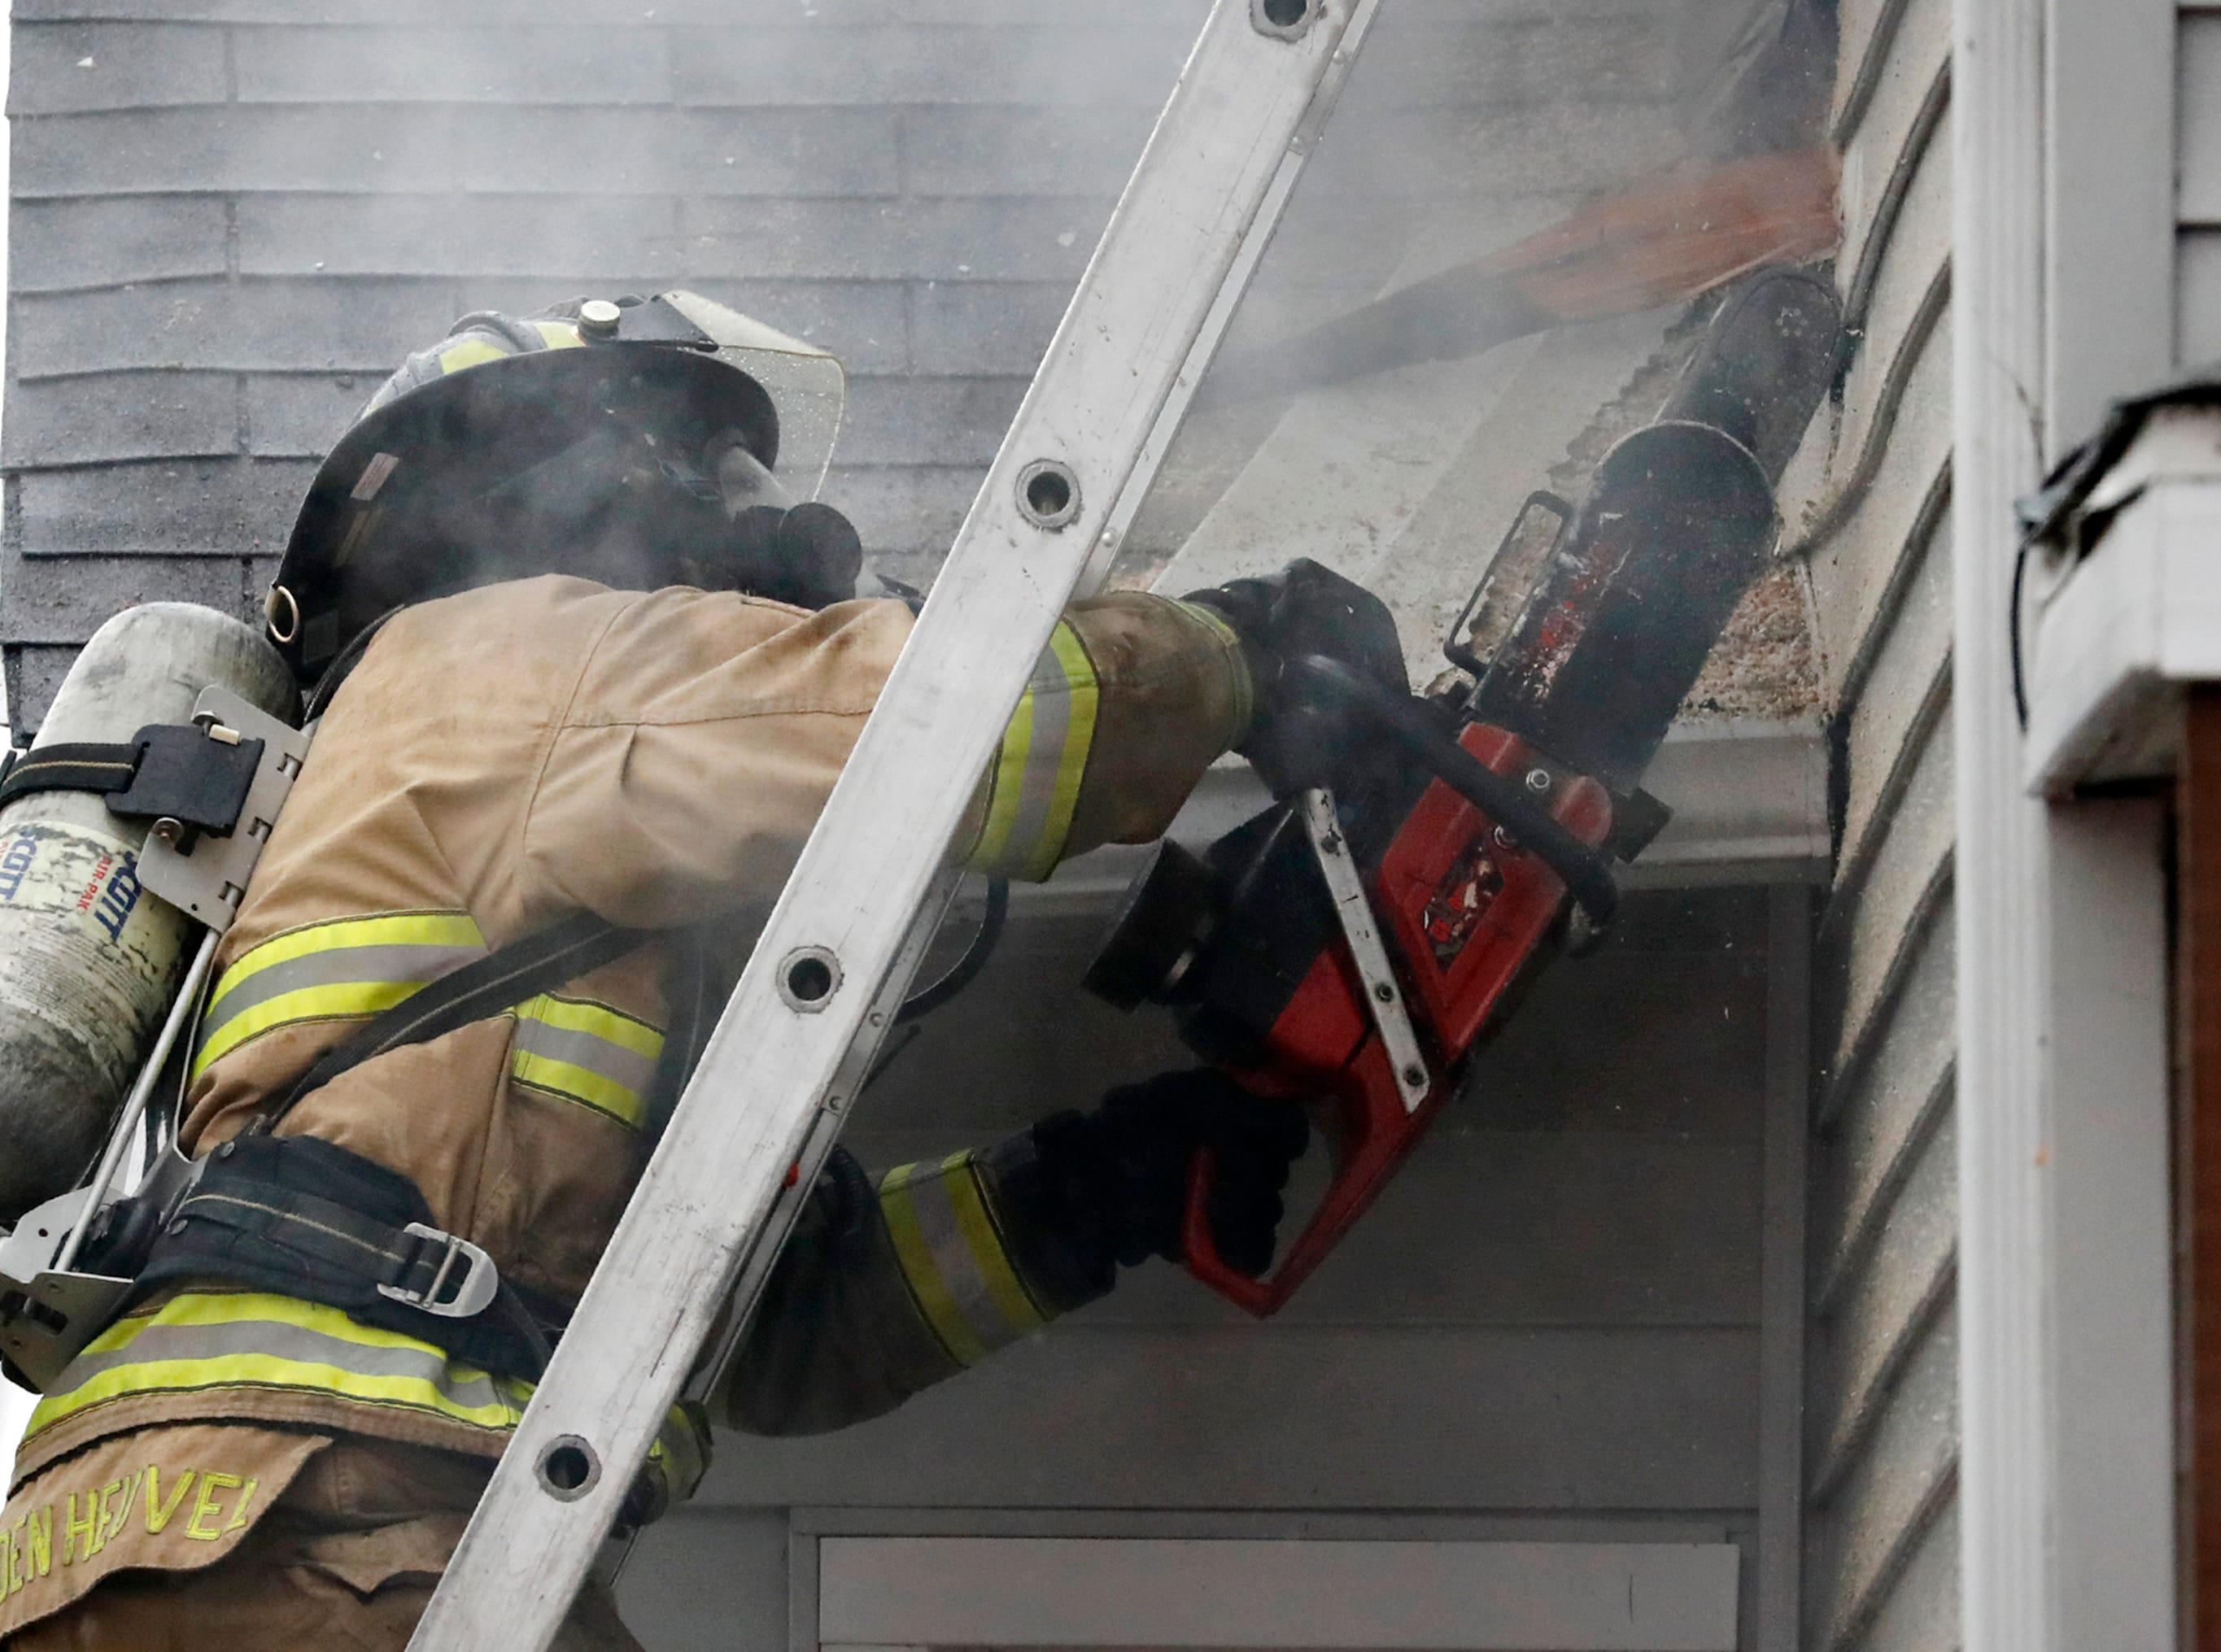 A firefighter works the scene of a structure fire on West 10th Street Thursday, Dec. 27, 2018, Kaukauna, Wis.